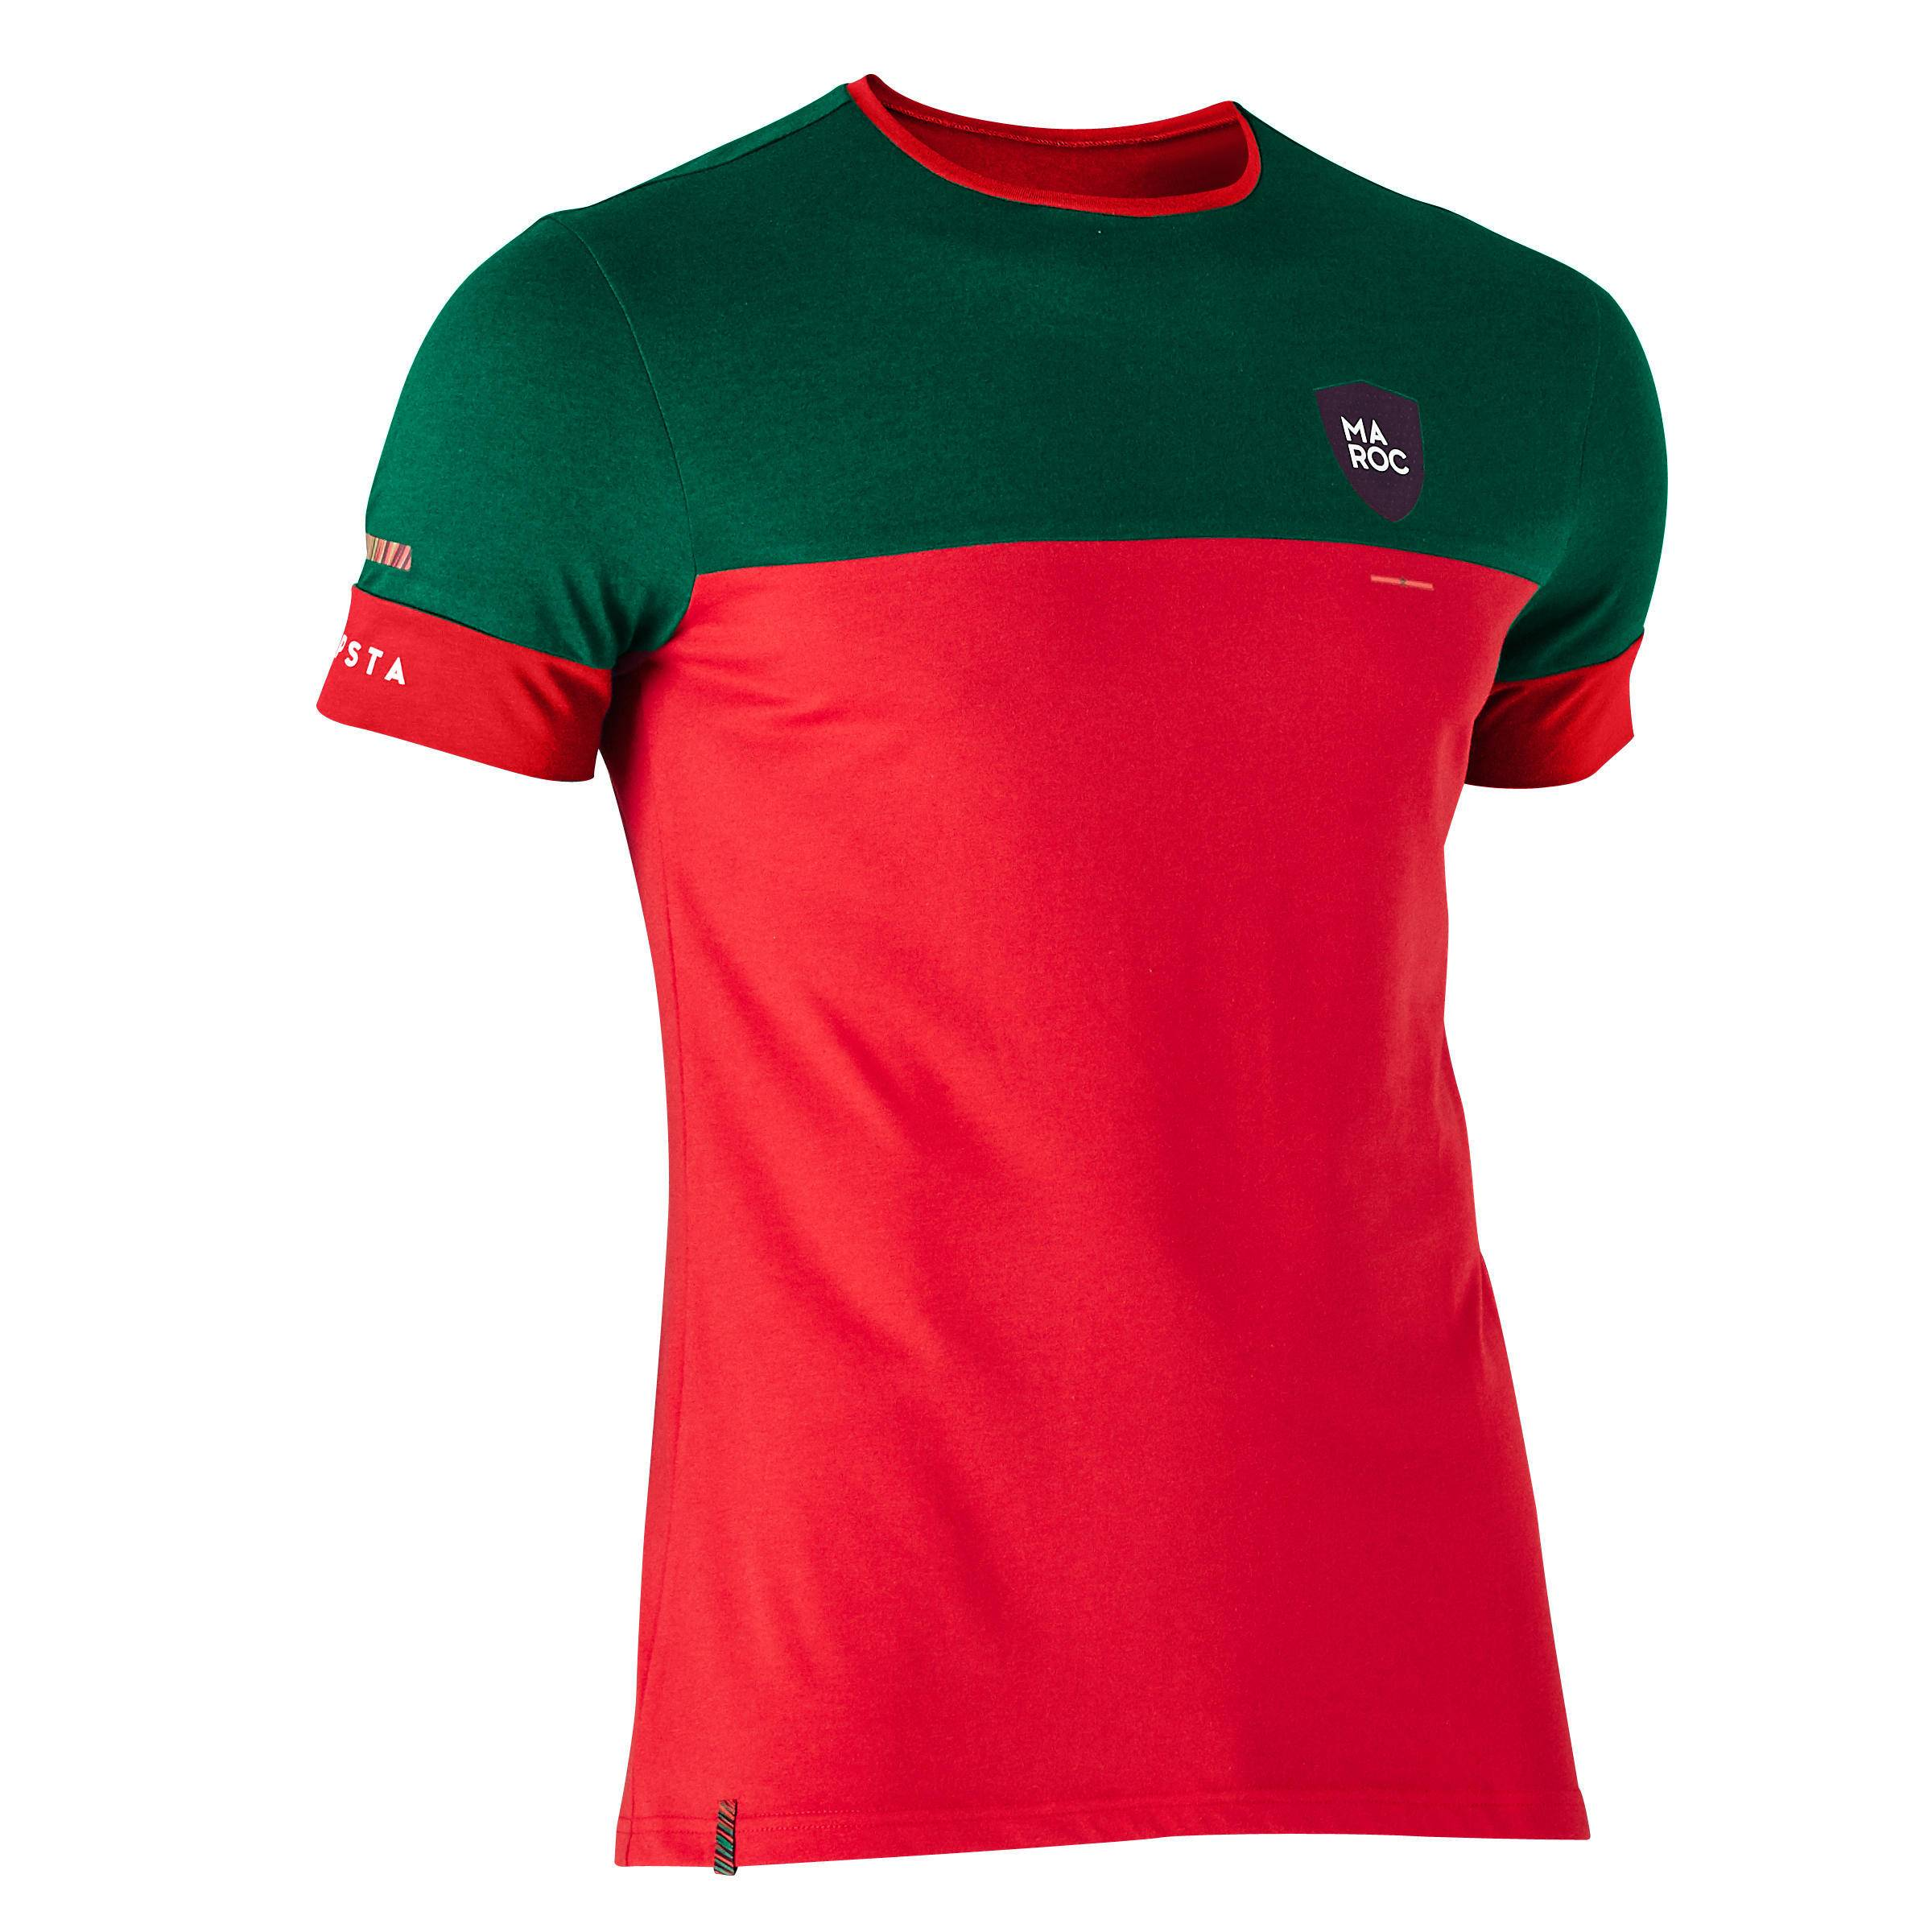 Kipsta T-shirt de football adulte FF100 Maroc - Kipsta